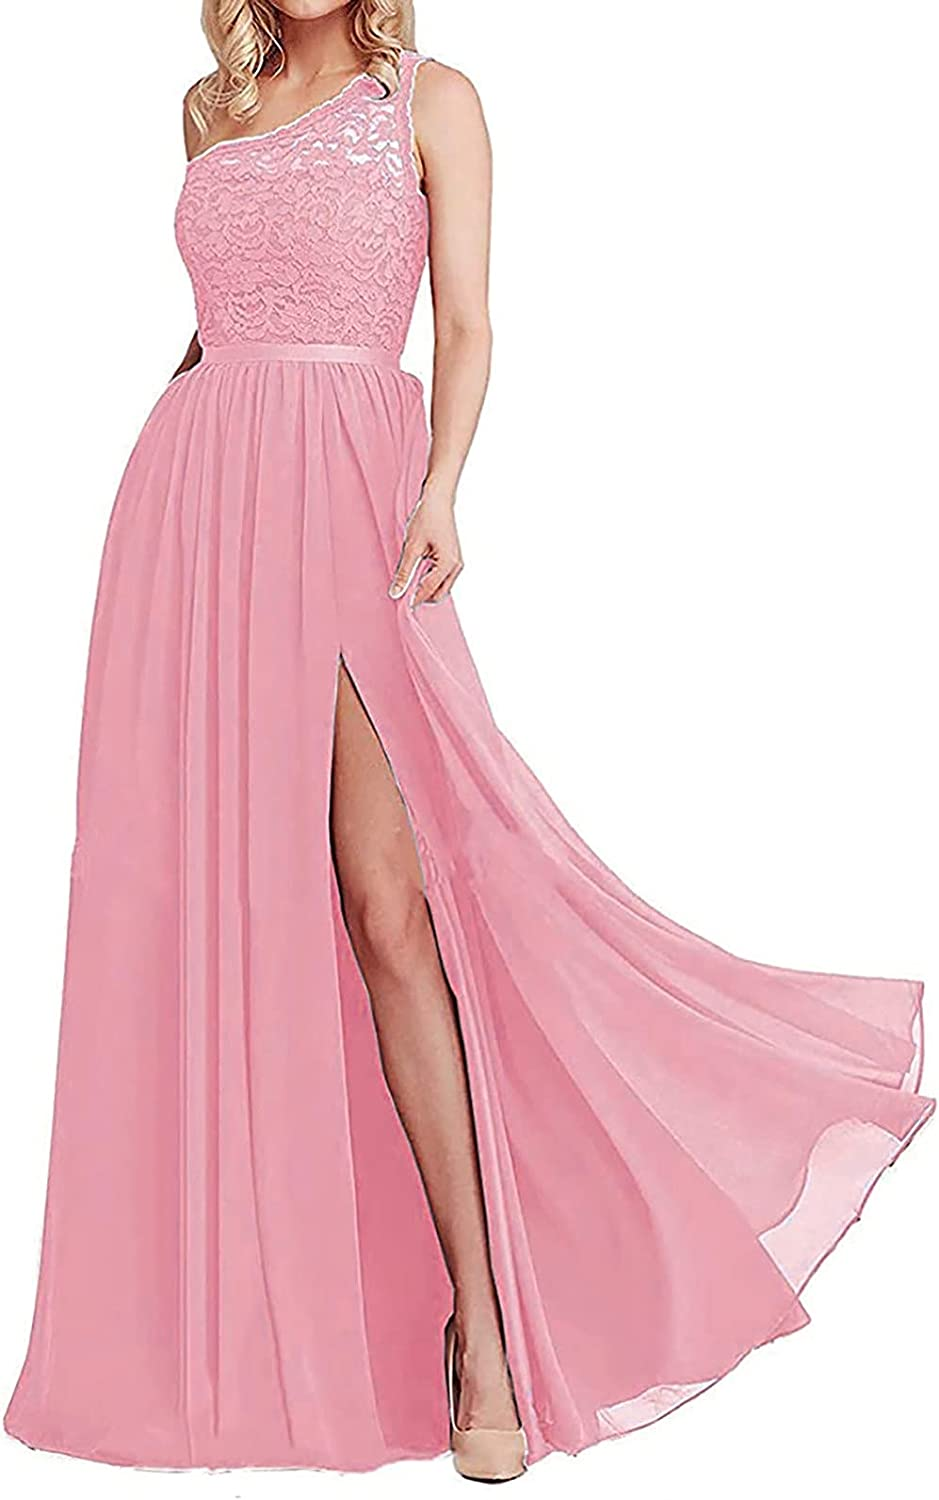 Tulsa Mall Women's One Shoulder Bridesmaid Dresses E Our shop most popular Prom Formal Long Dress